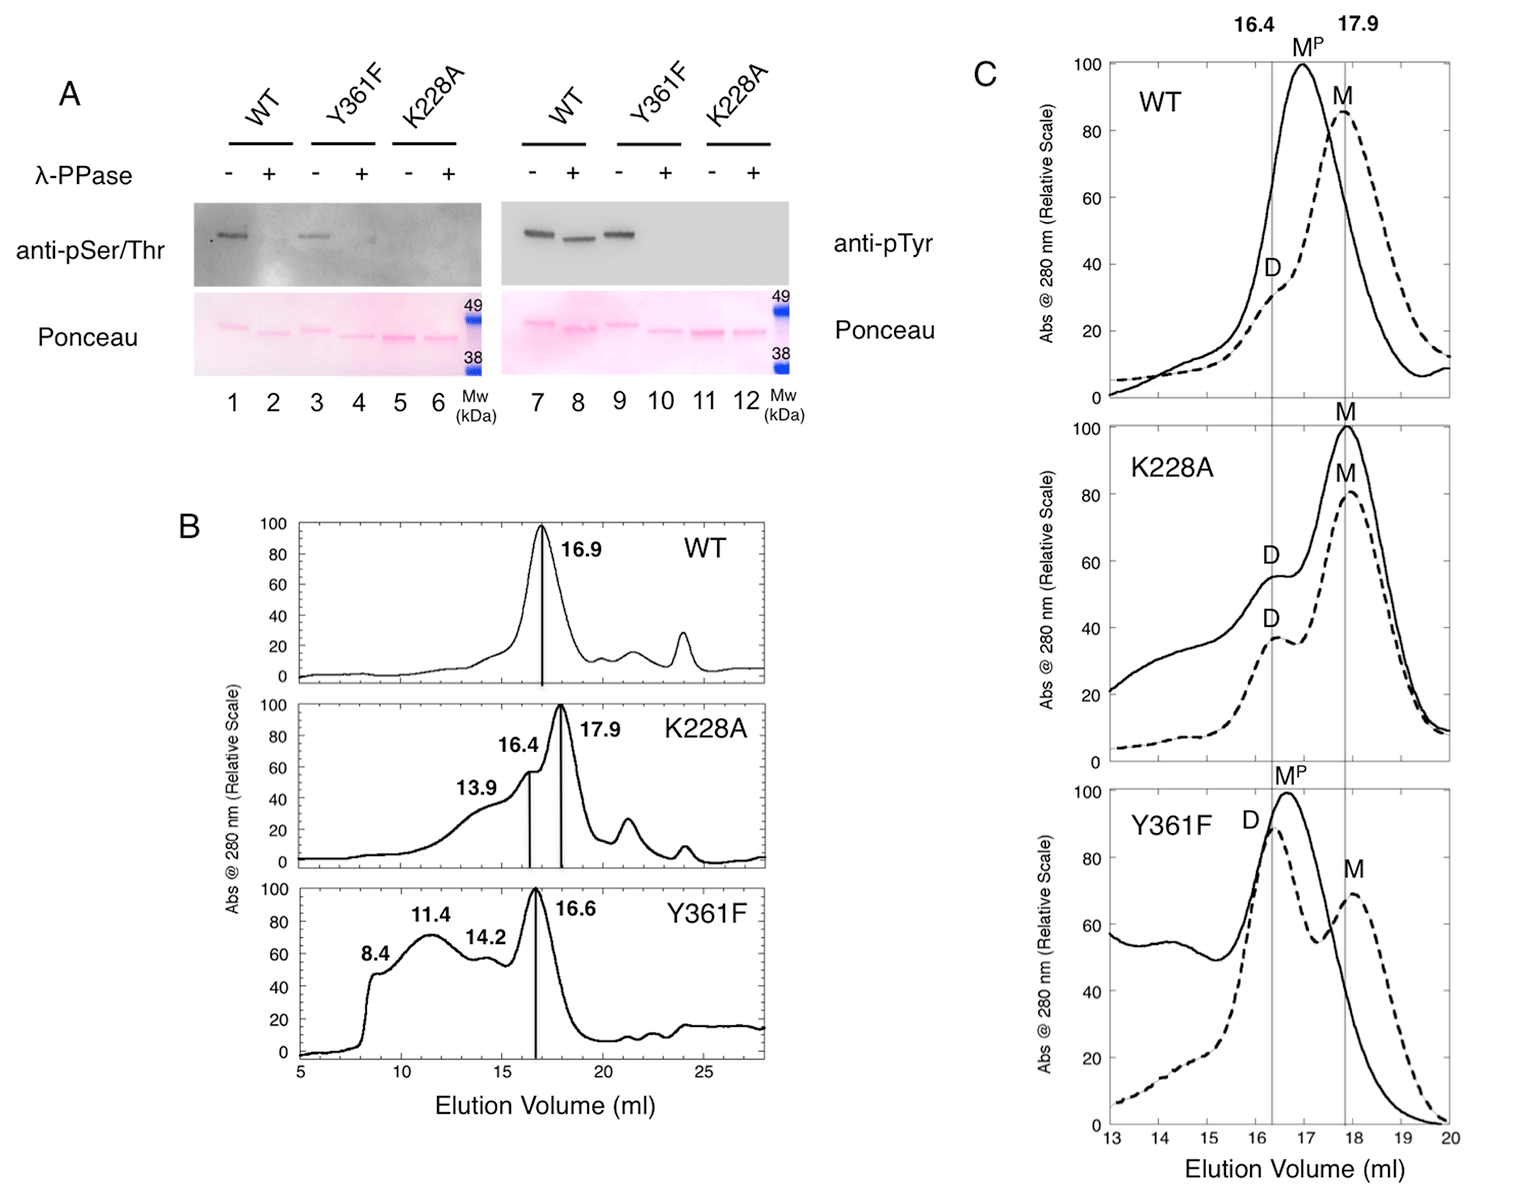 Effects of phosphorylations on HIPK2 KDom oligomerization.